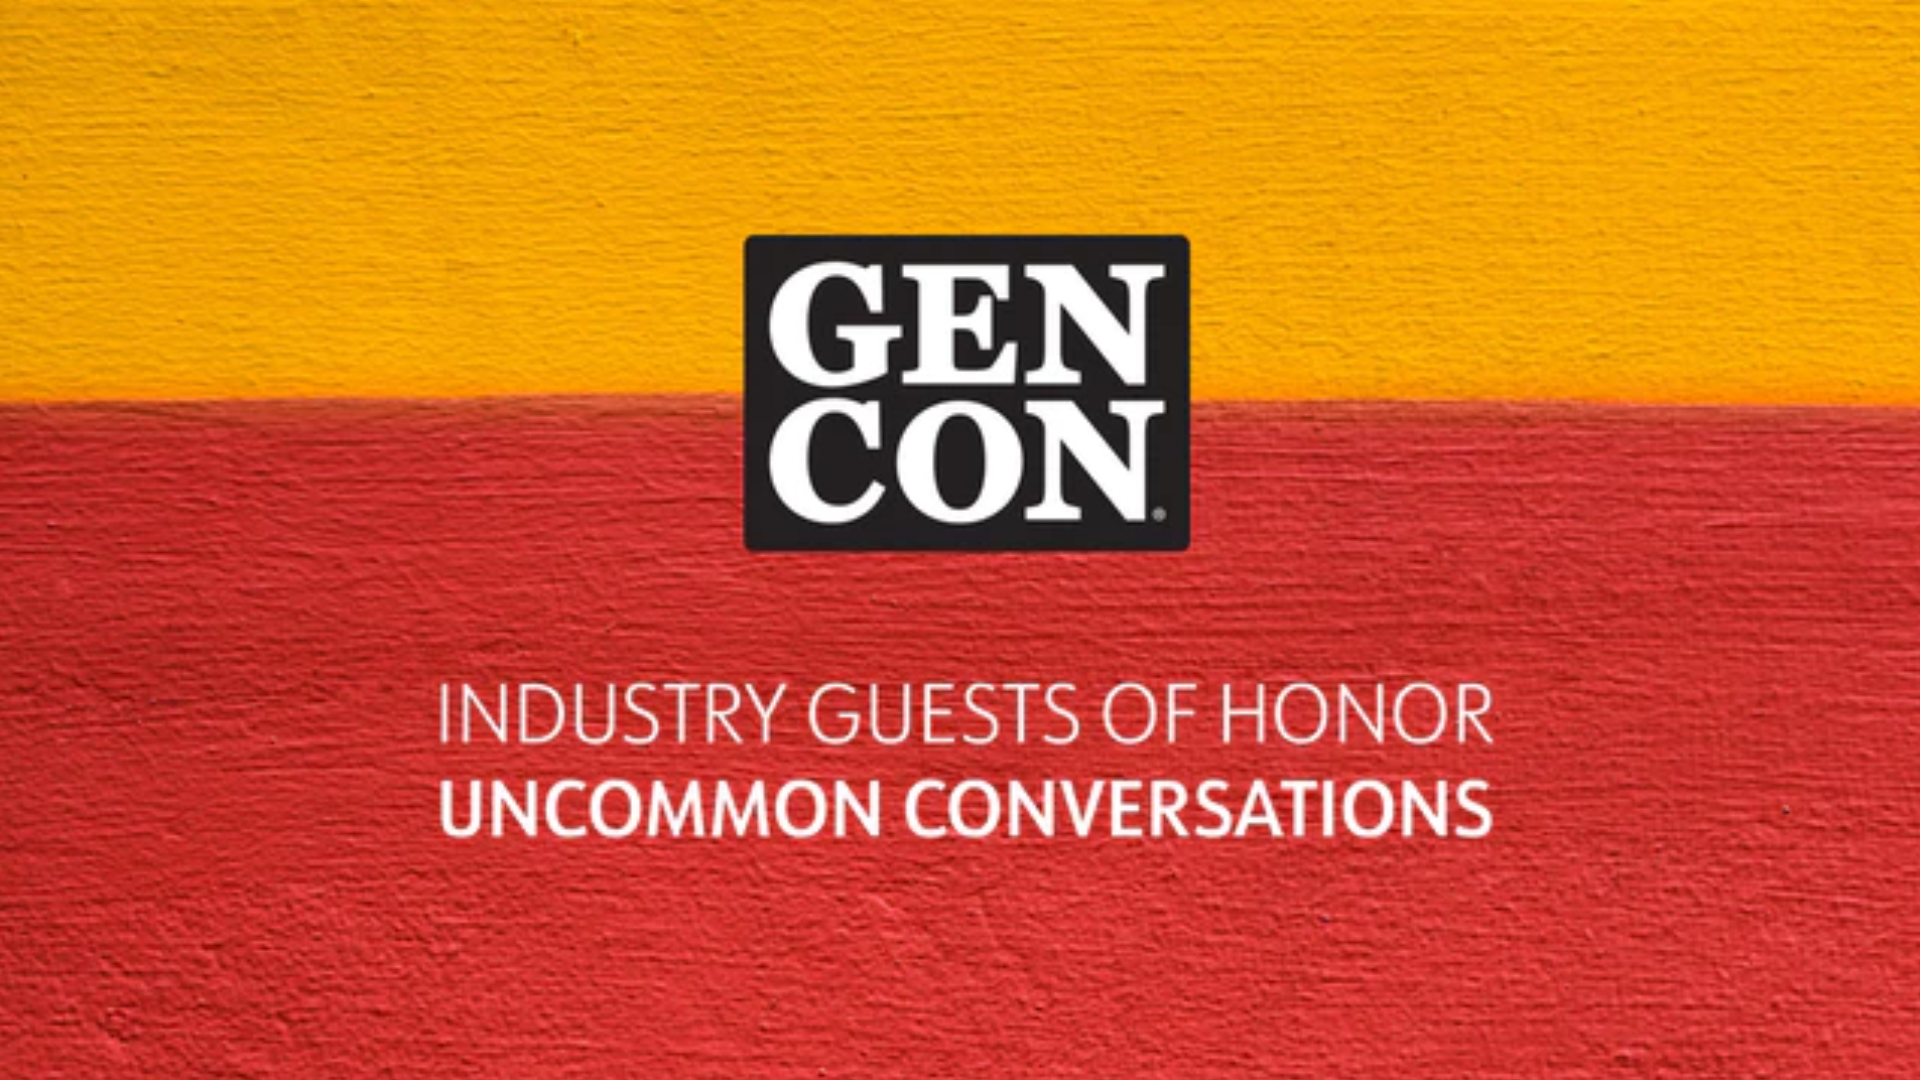 Gen Con Industry Guests of Honor